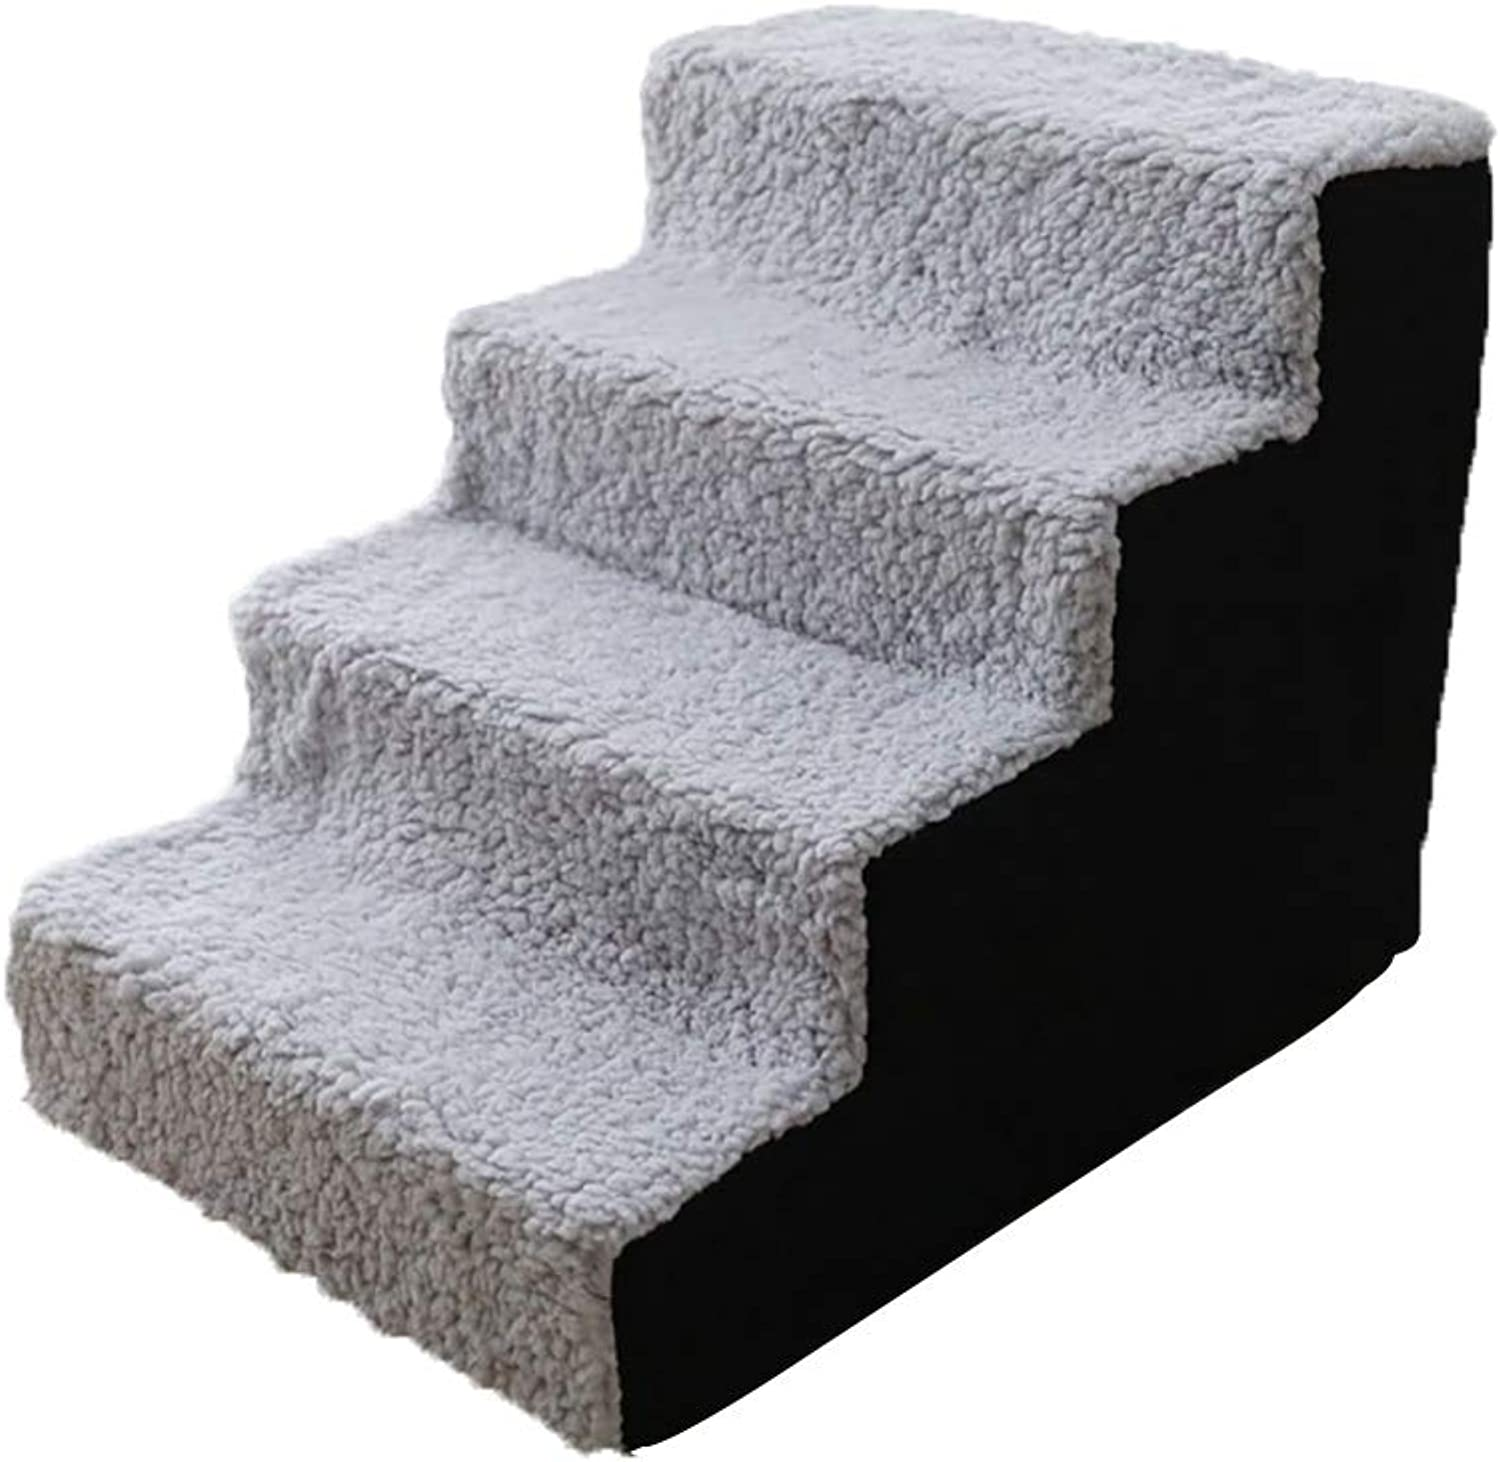 Pet stairs 4 Steps, for Large Medium Size Dog Cat Older Pet, Easy Climb Stairs Ladder Assistance, L54×W38×H40cm